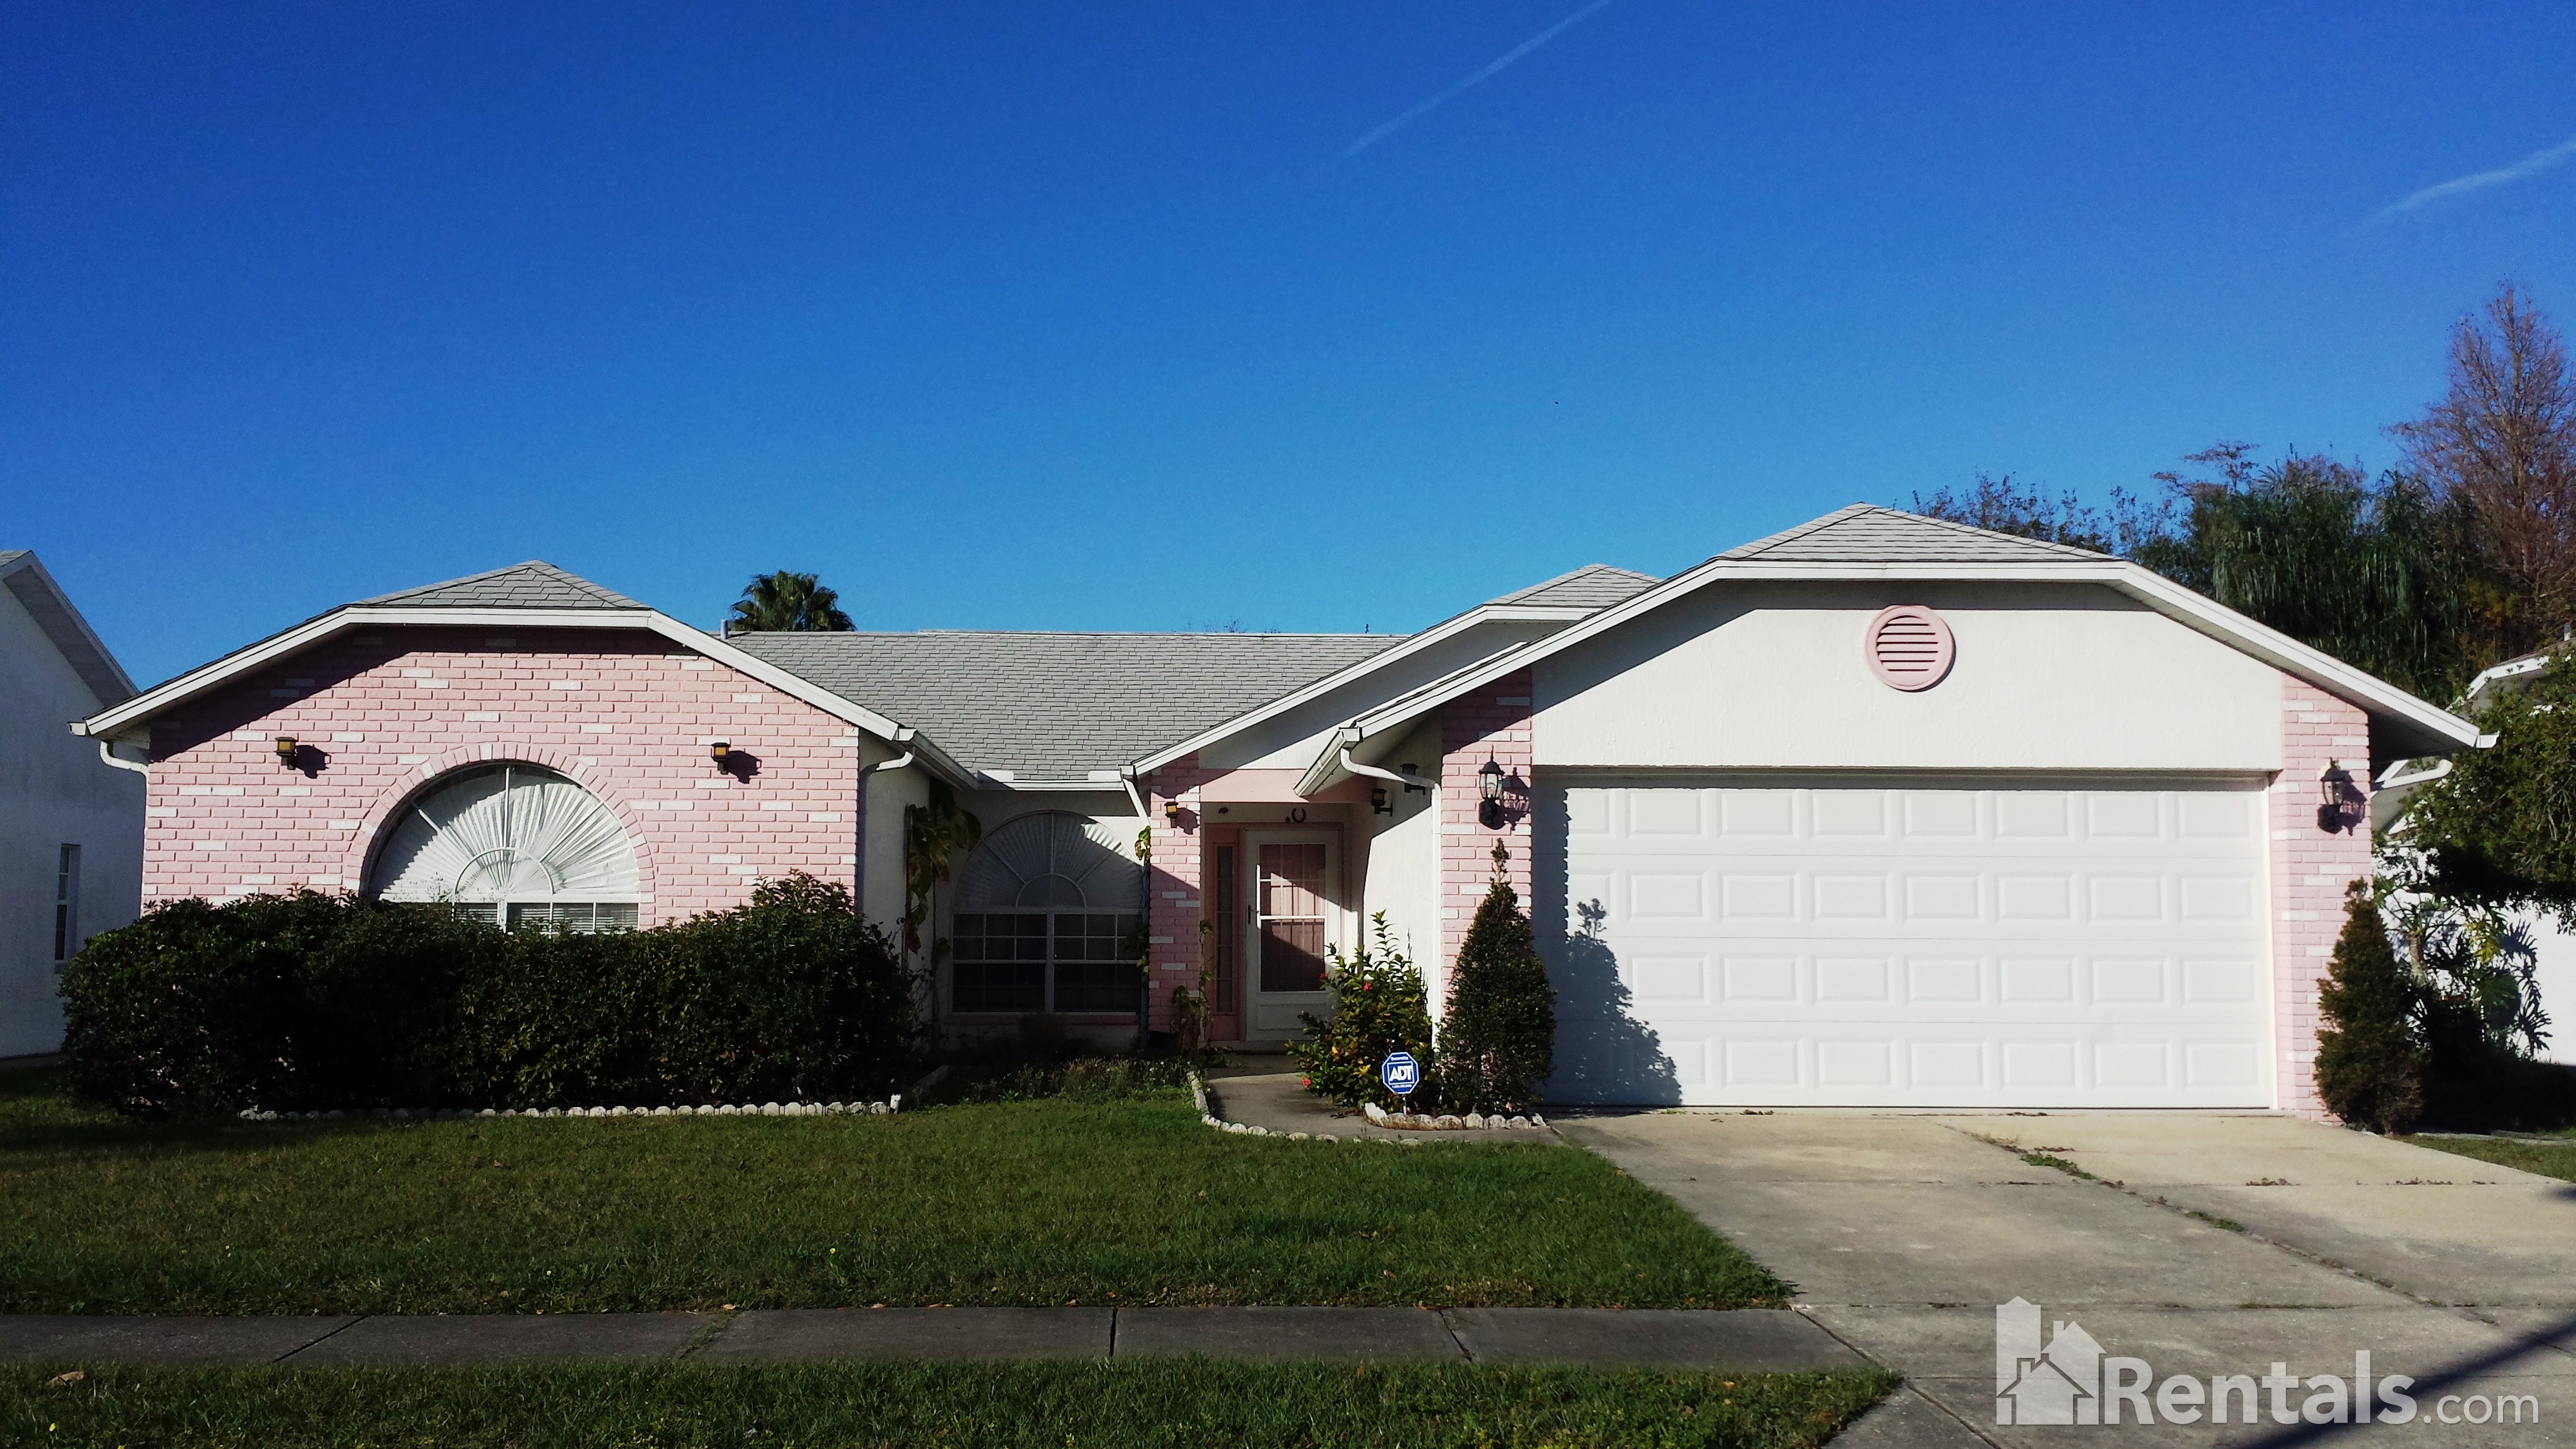 House for Rent in Deer Park